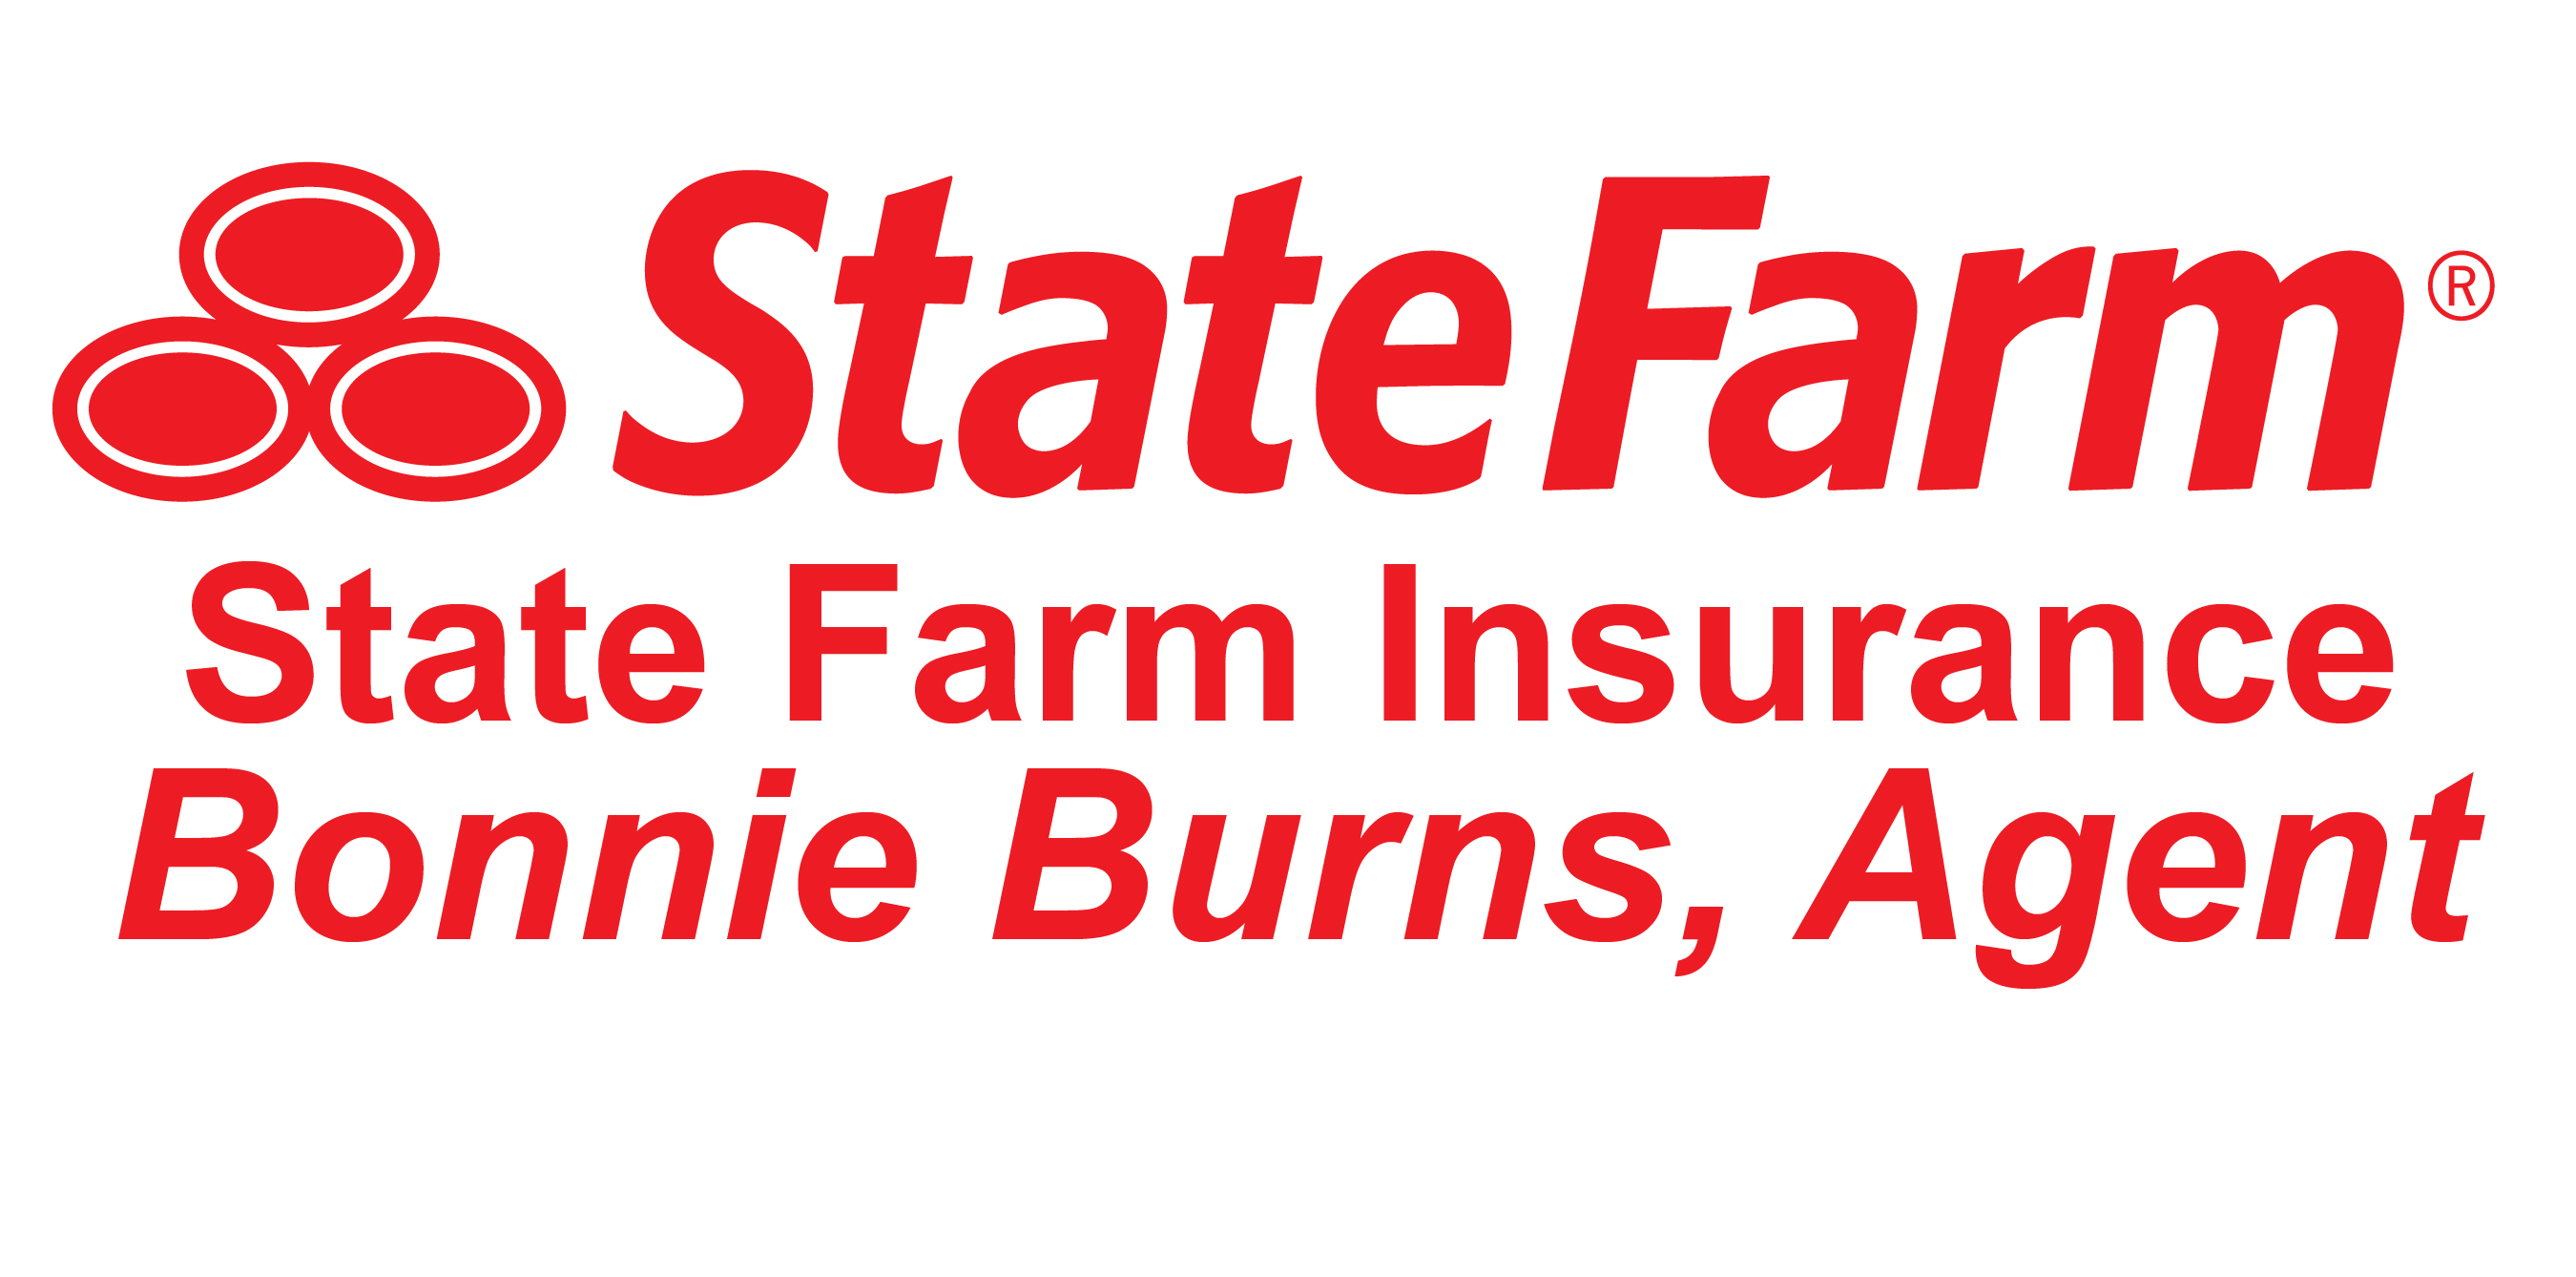 Sponsor State Farm Insurance - Bonnie Burns, Agent